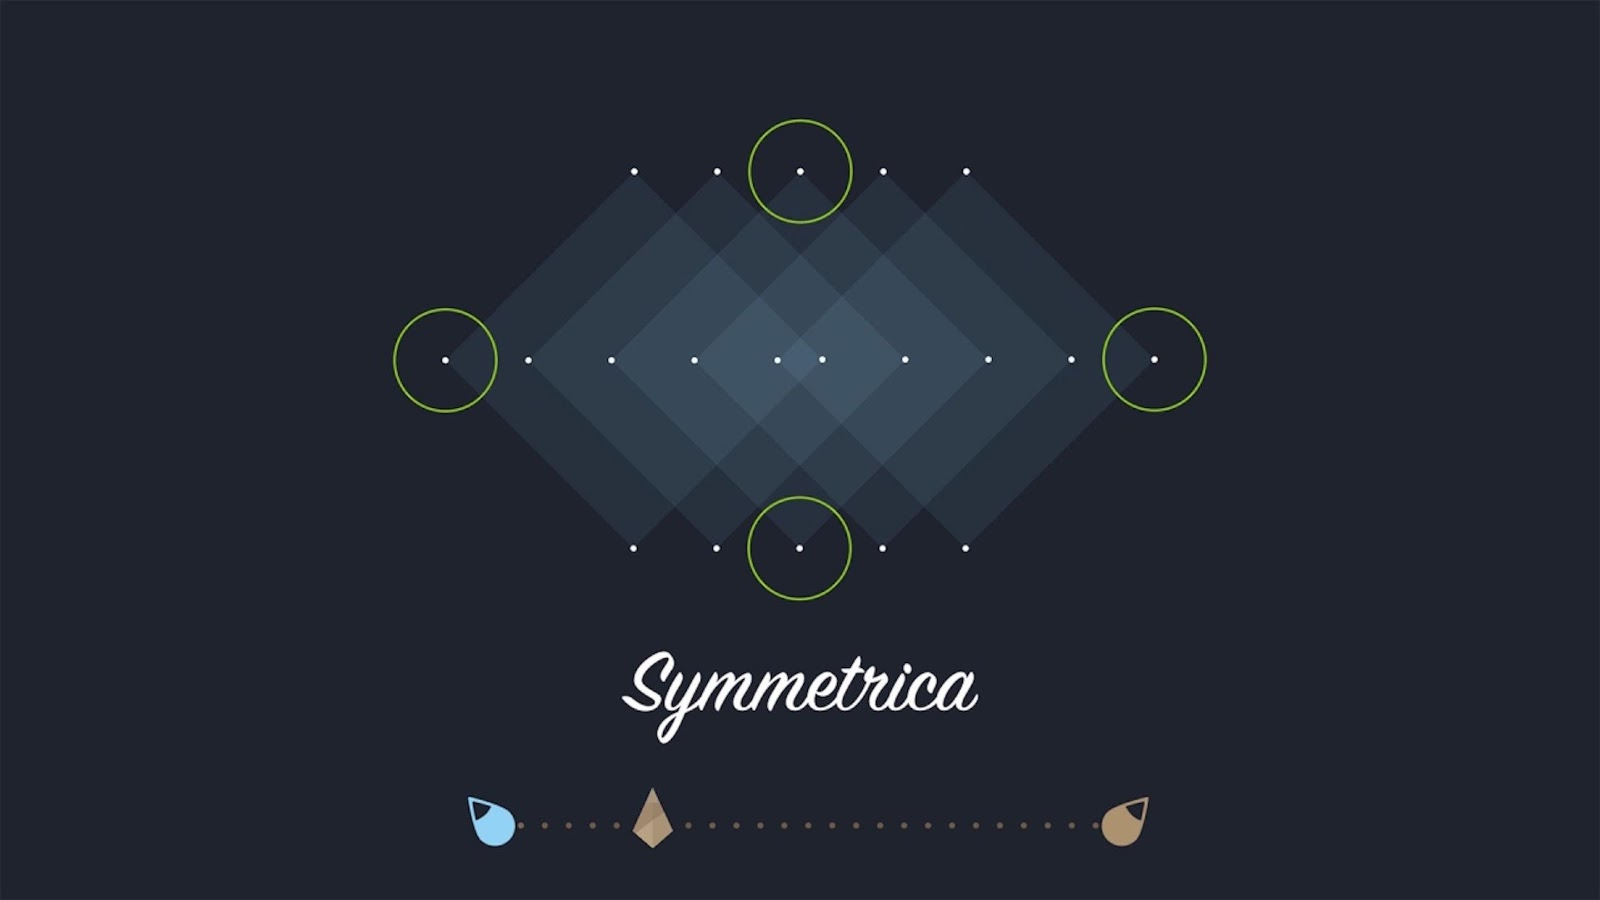 Symmetrica - Minimalistic game- screenshot